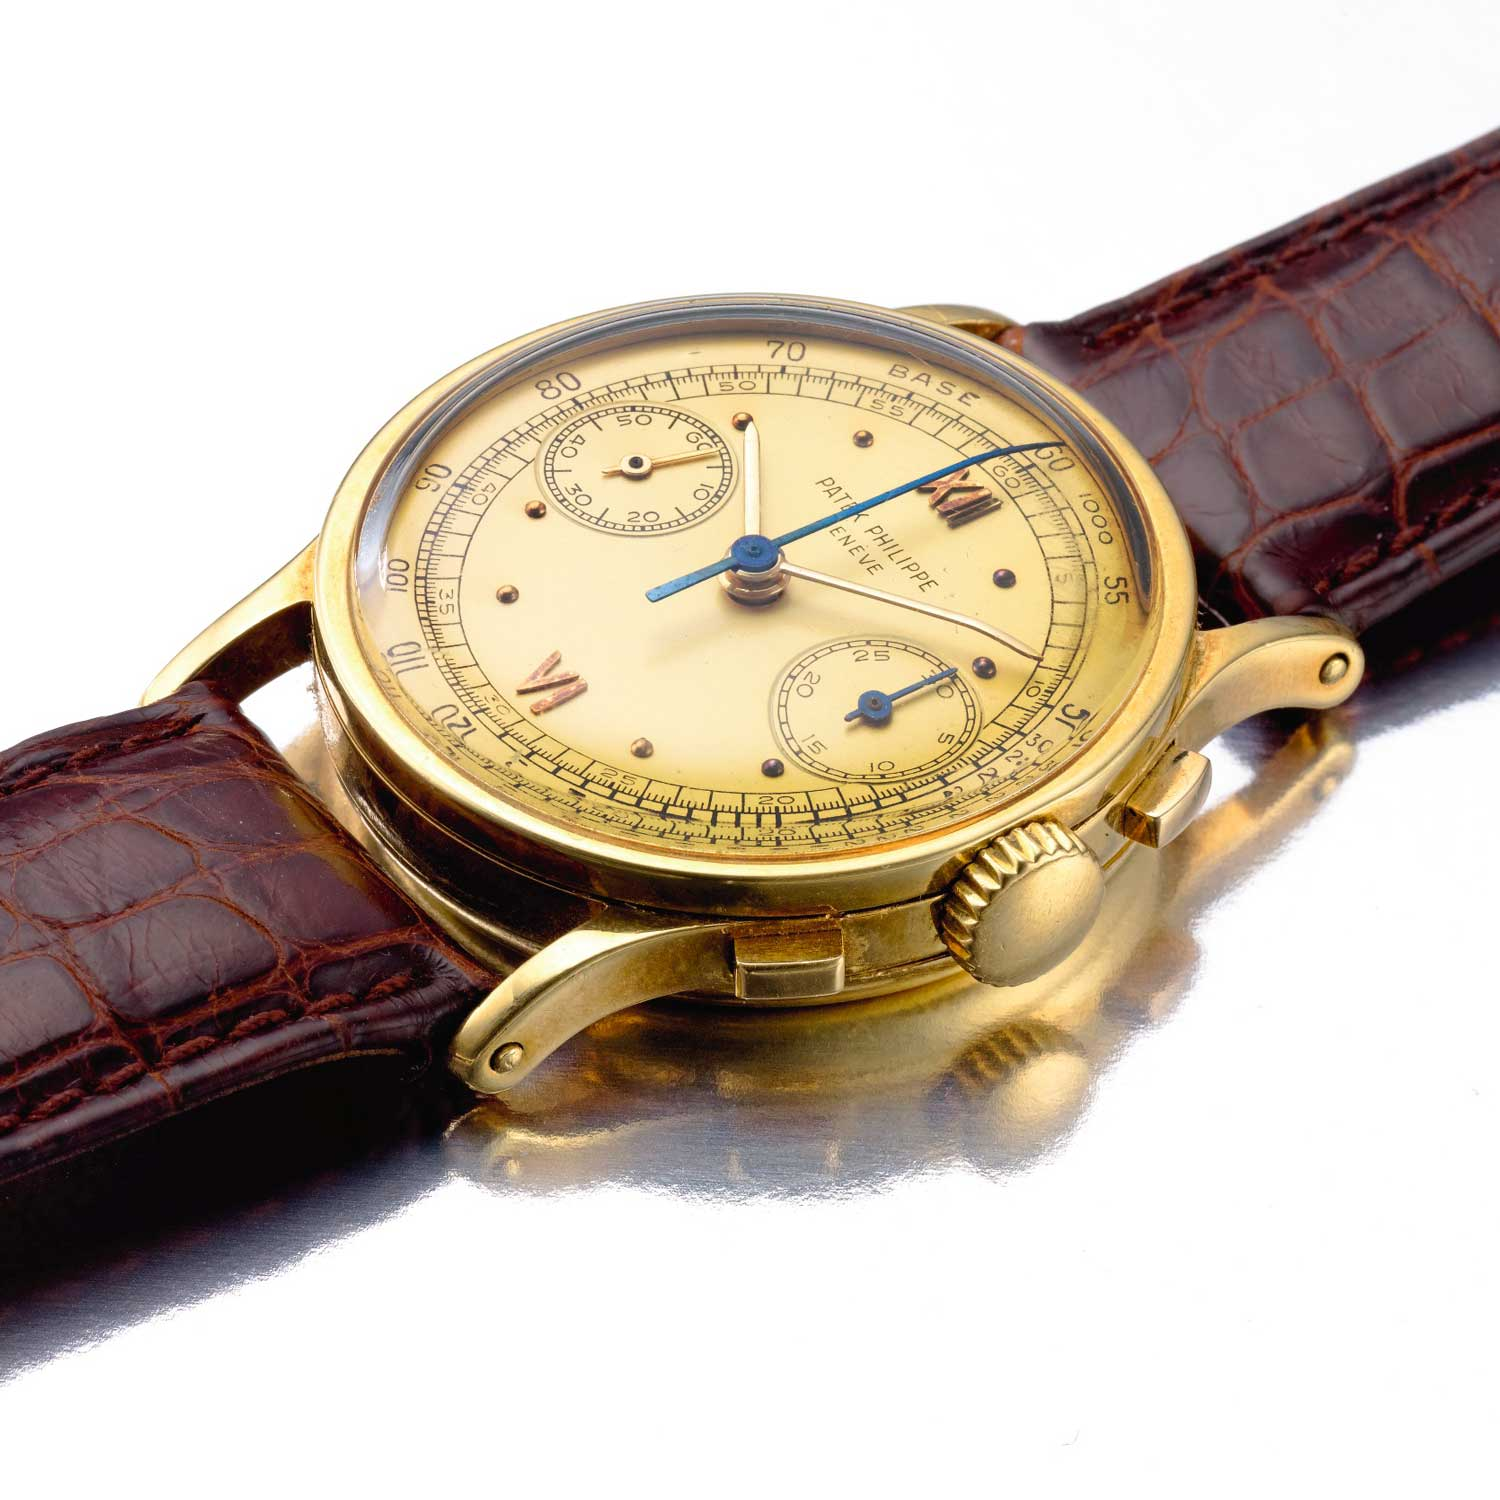 1951 Patek Philippe ref. 533 yellow gold chronograph with gold dial and Roman numerals (Image: Sothebys.com)